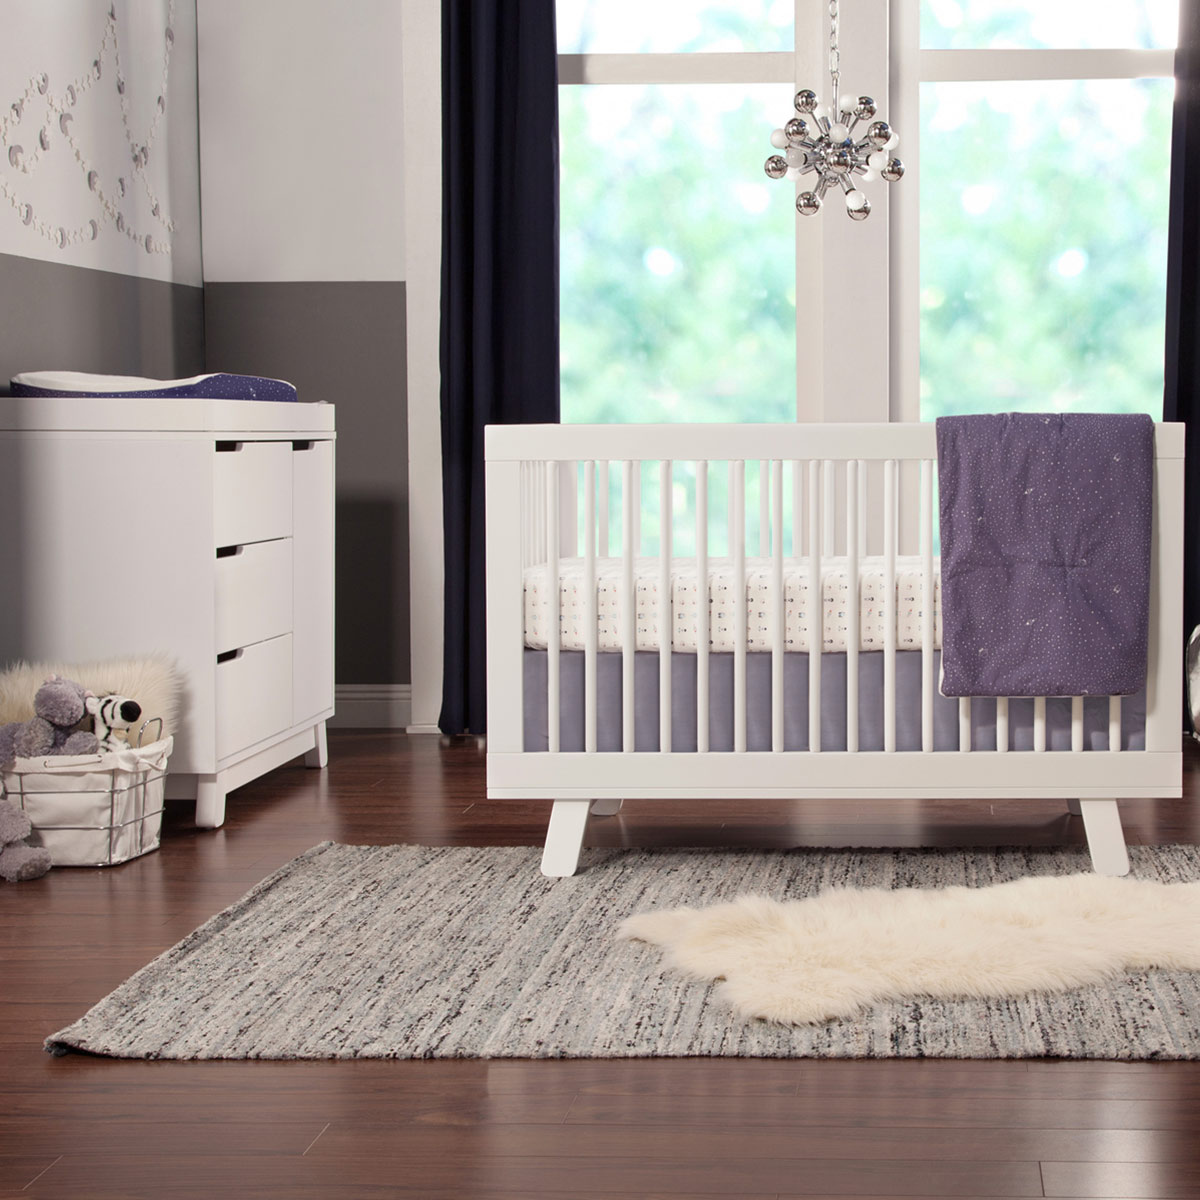 Babyletto 2 Piece Nursery Set Hudson 3 In 1 Convertible Crib And Changer Dresser White Free Shipping